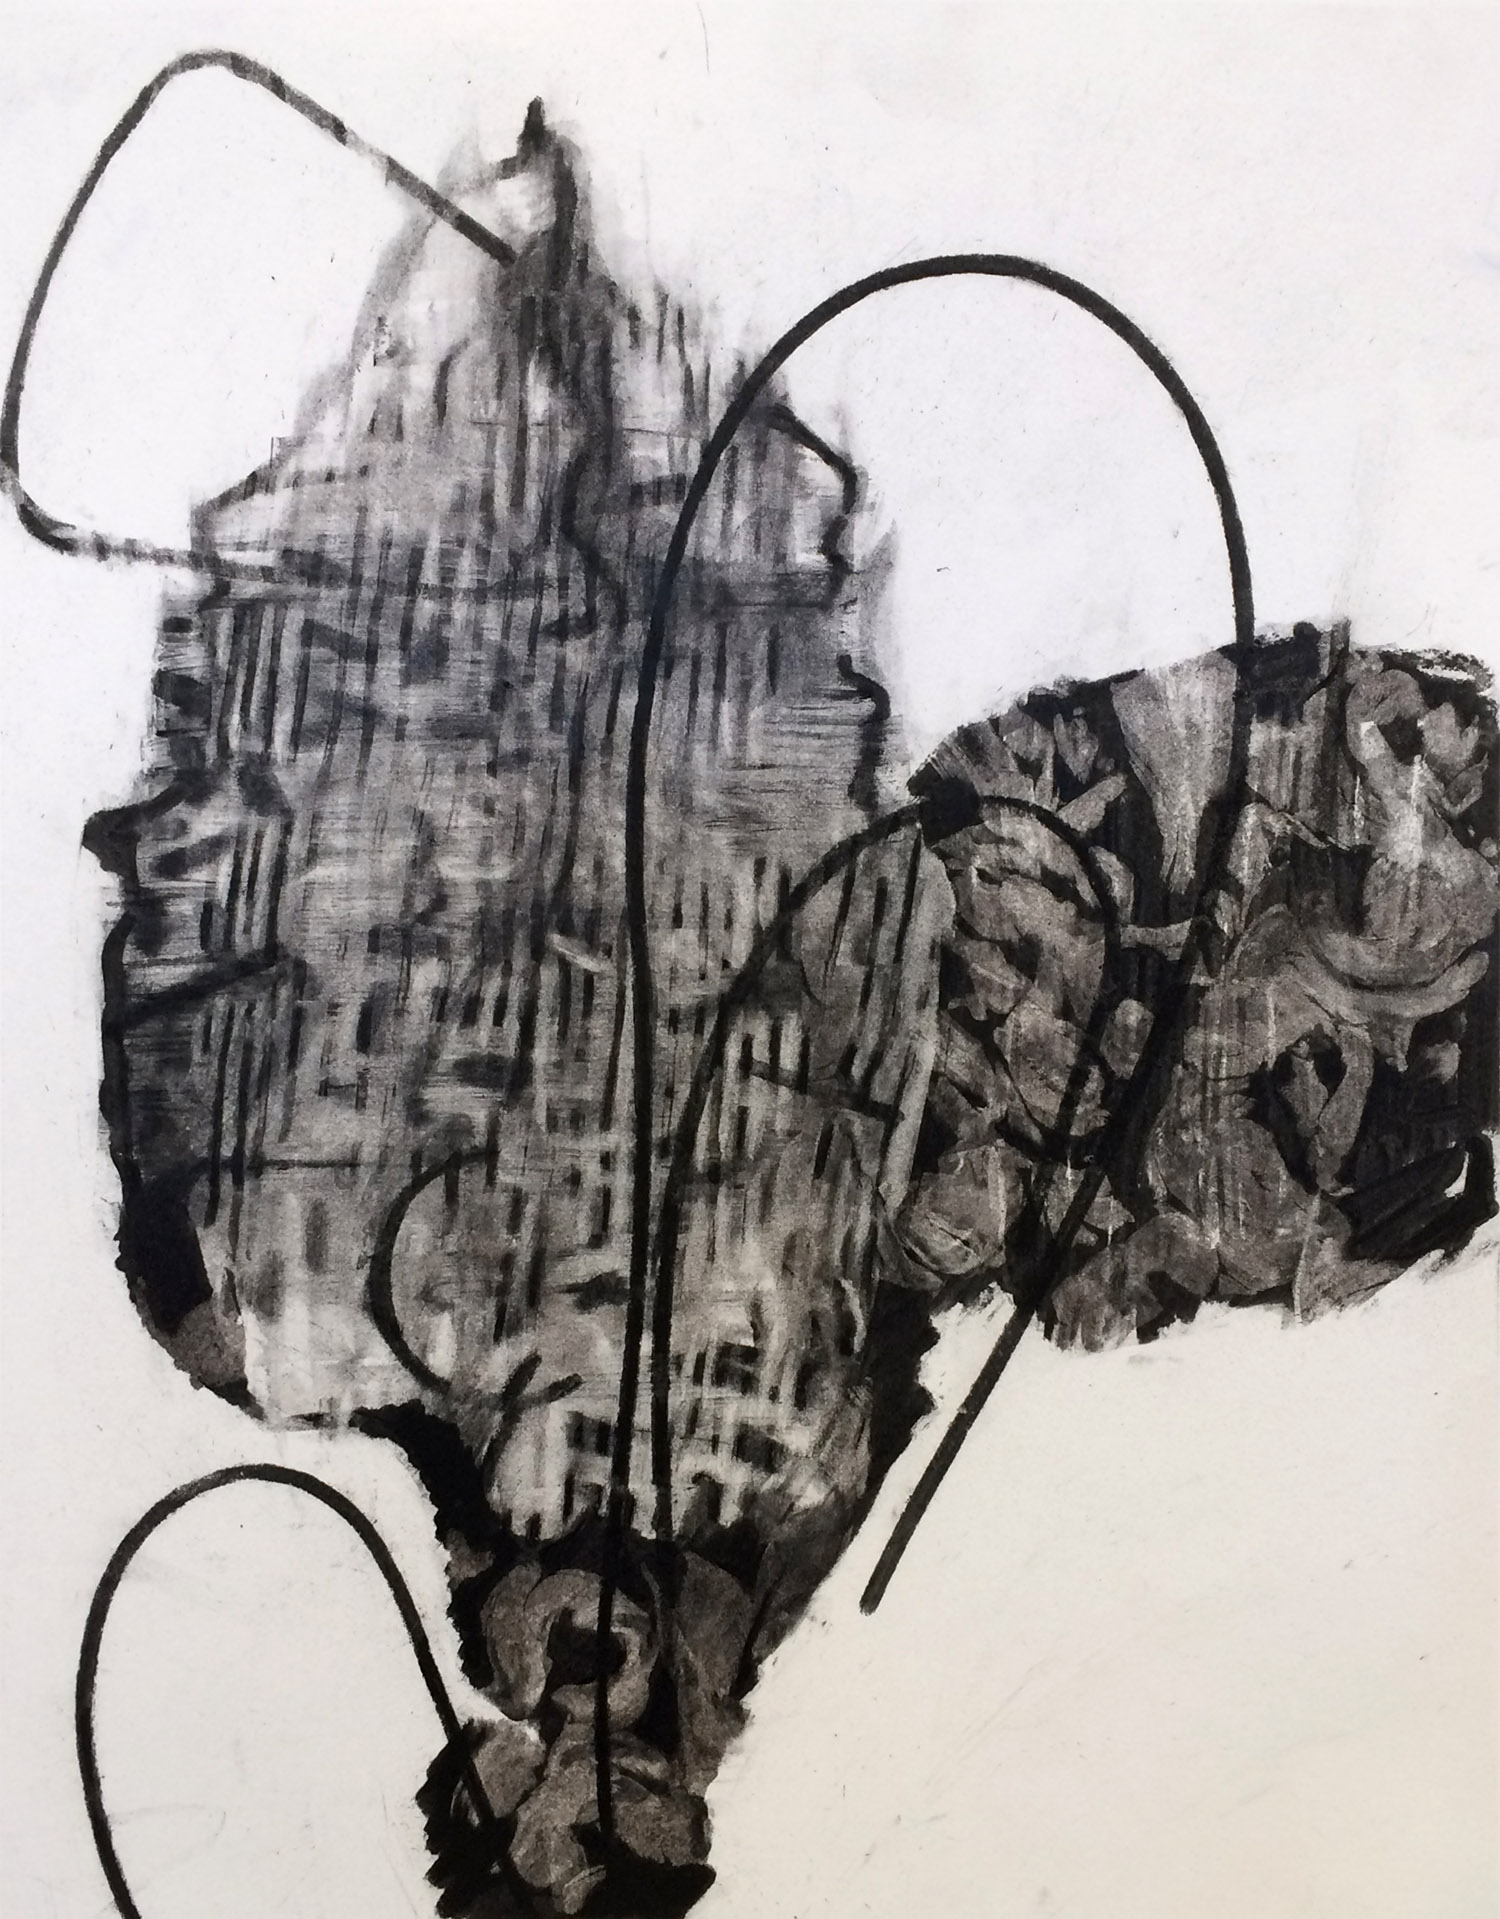 Insistent Verticals, charcoal on acid free paper, 17 x 14 in.